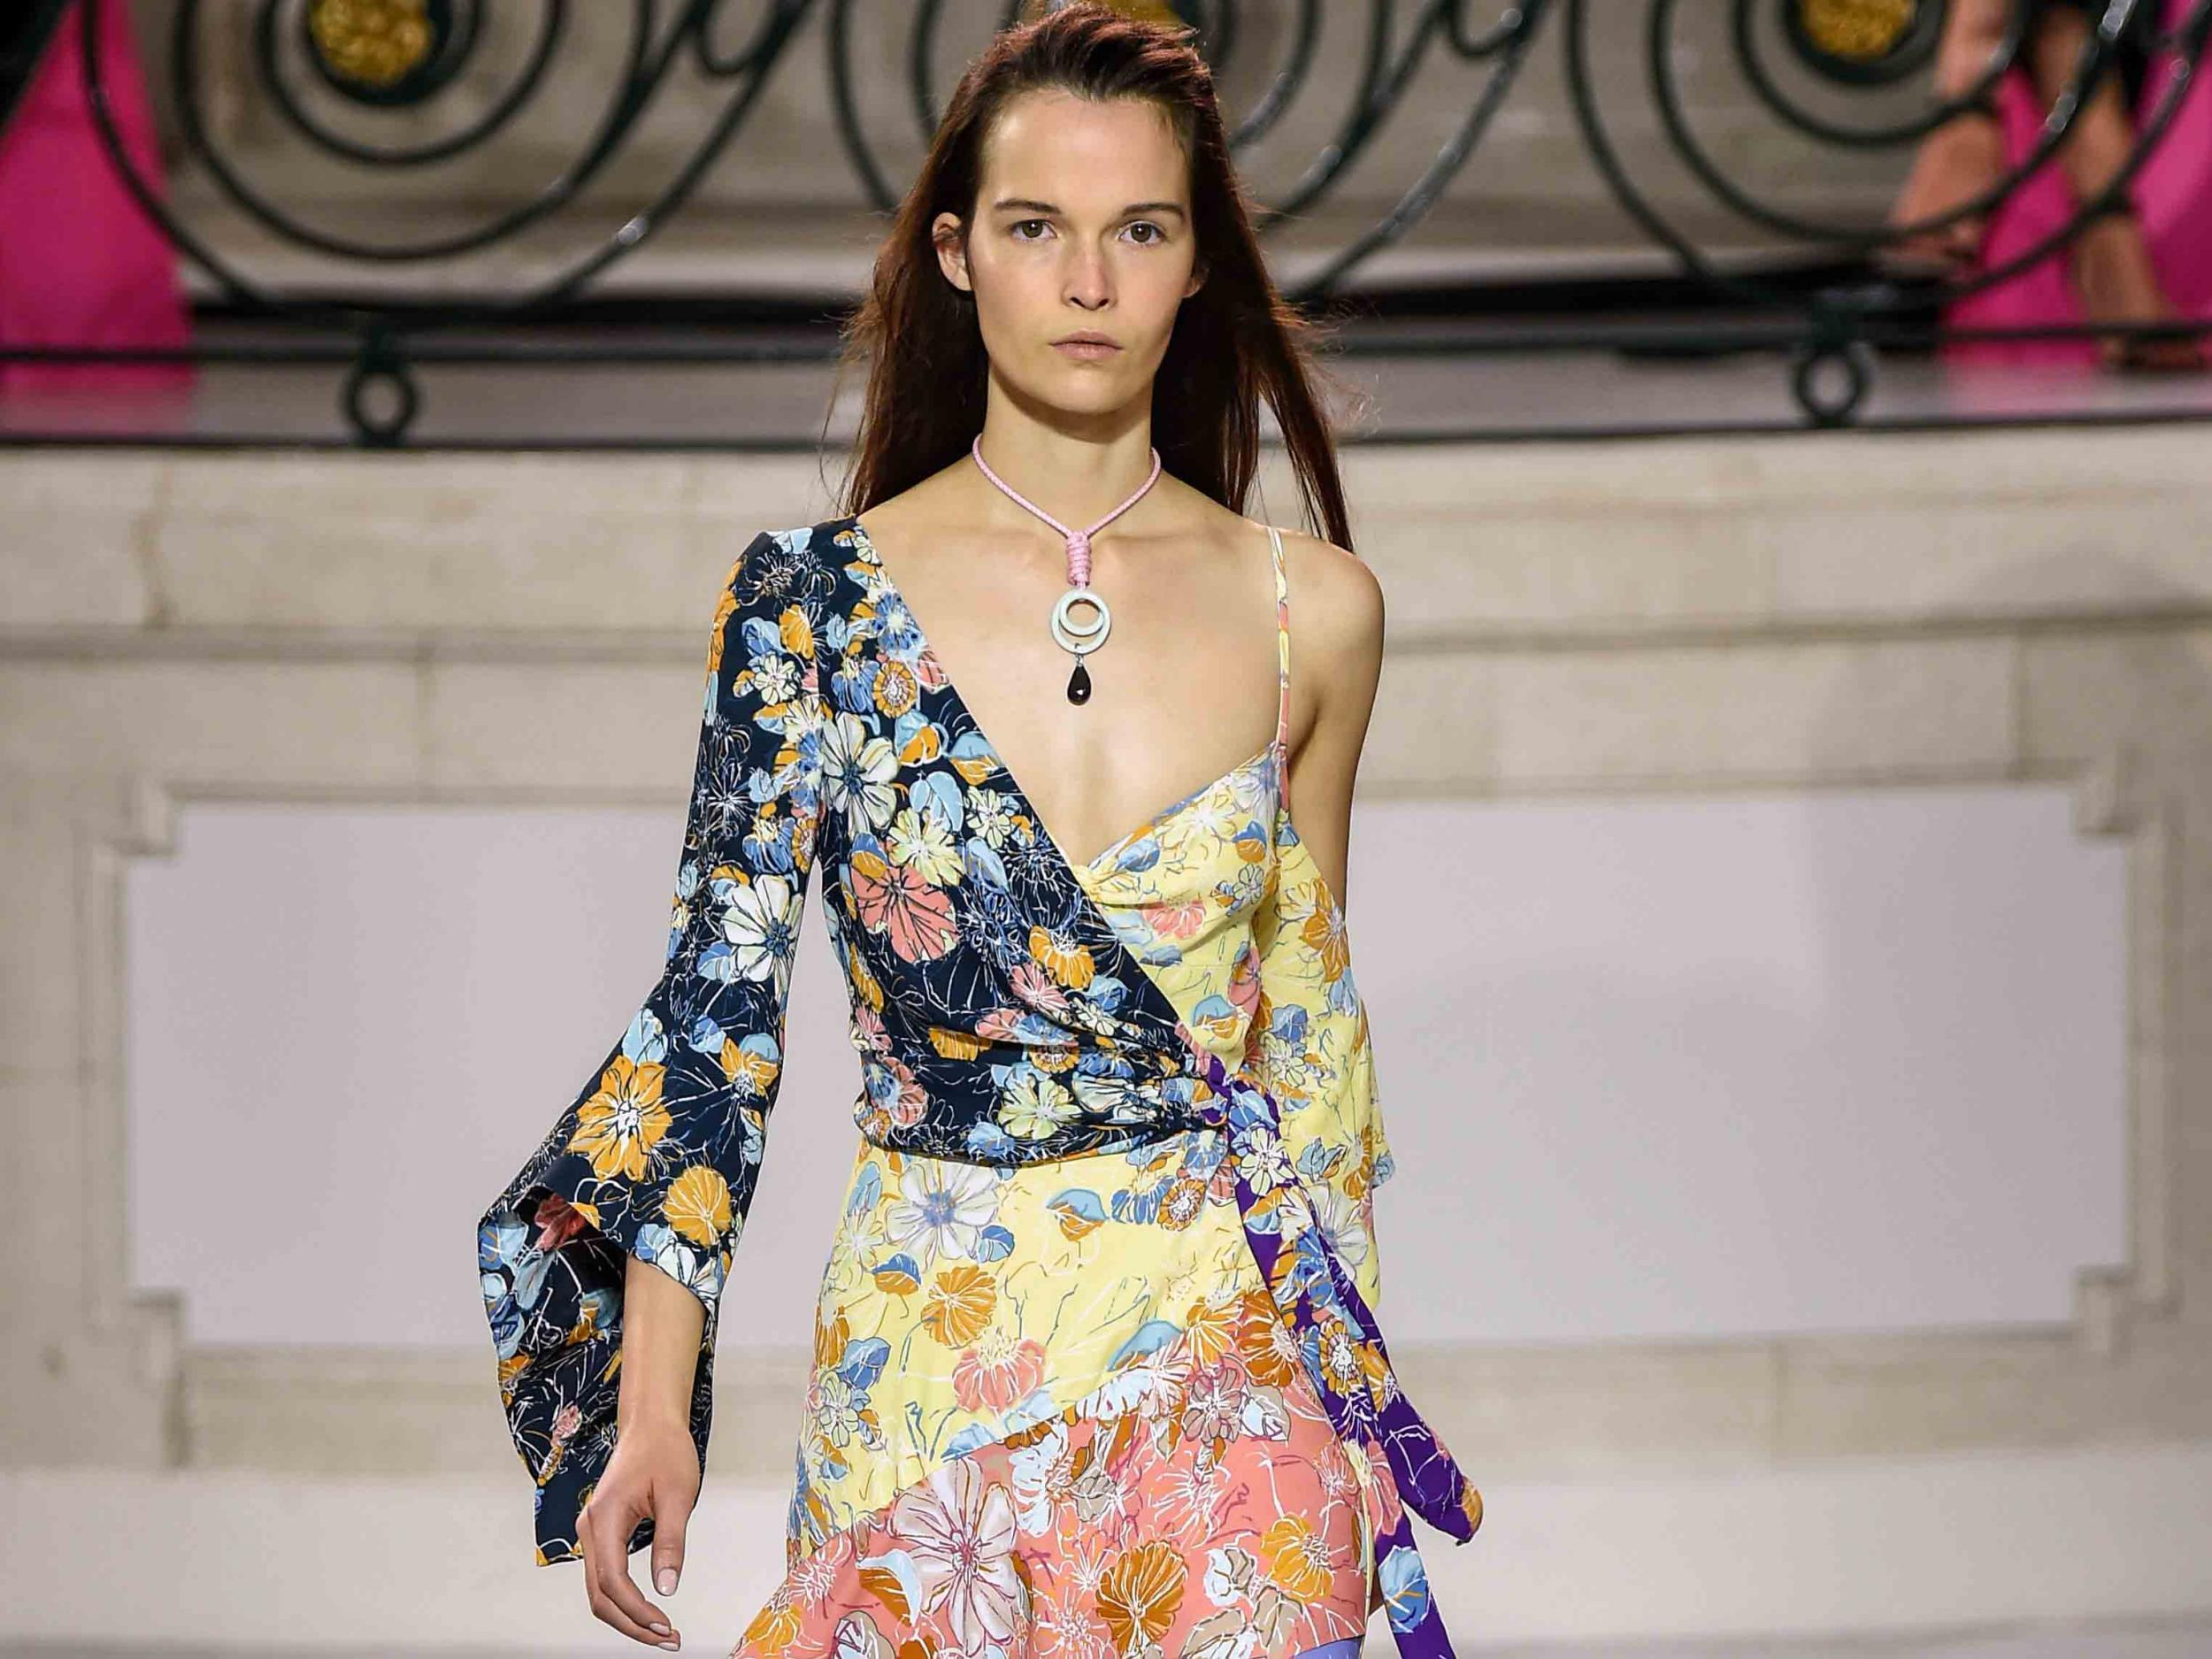 Patchwork petals: The new way to wear florals for spring